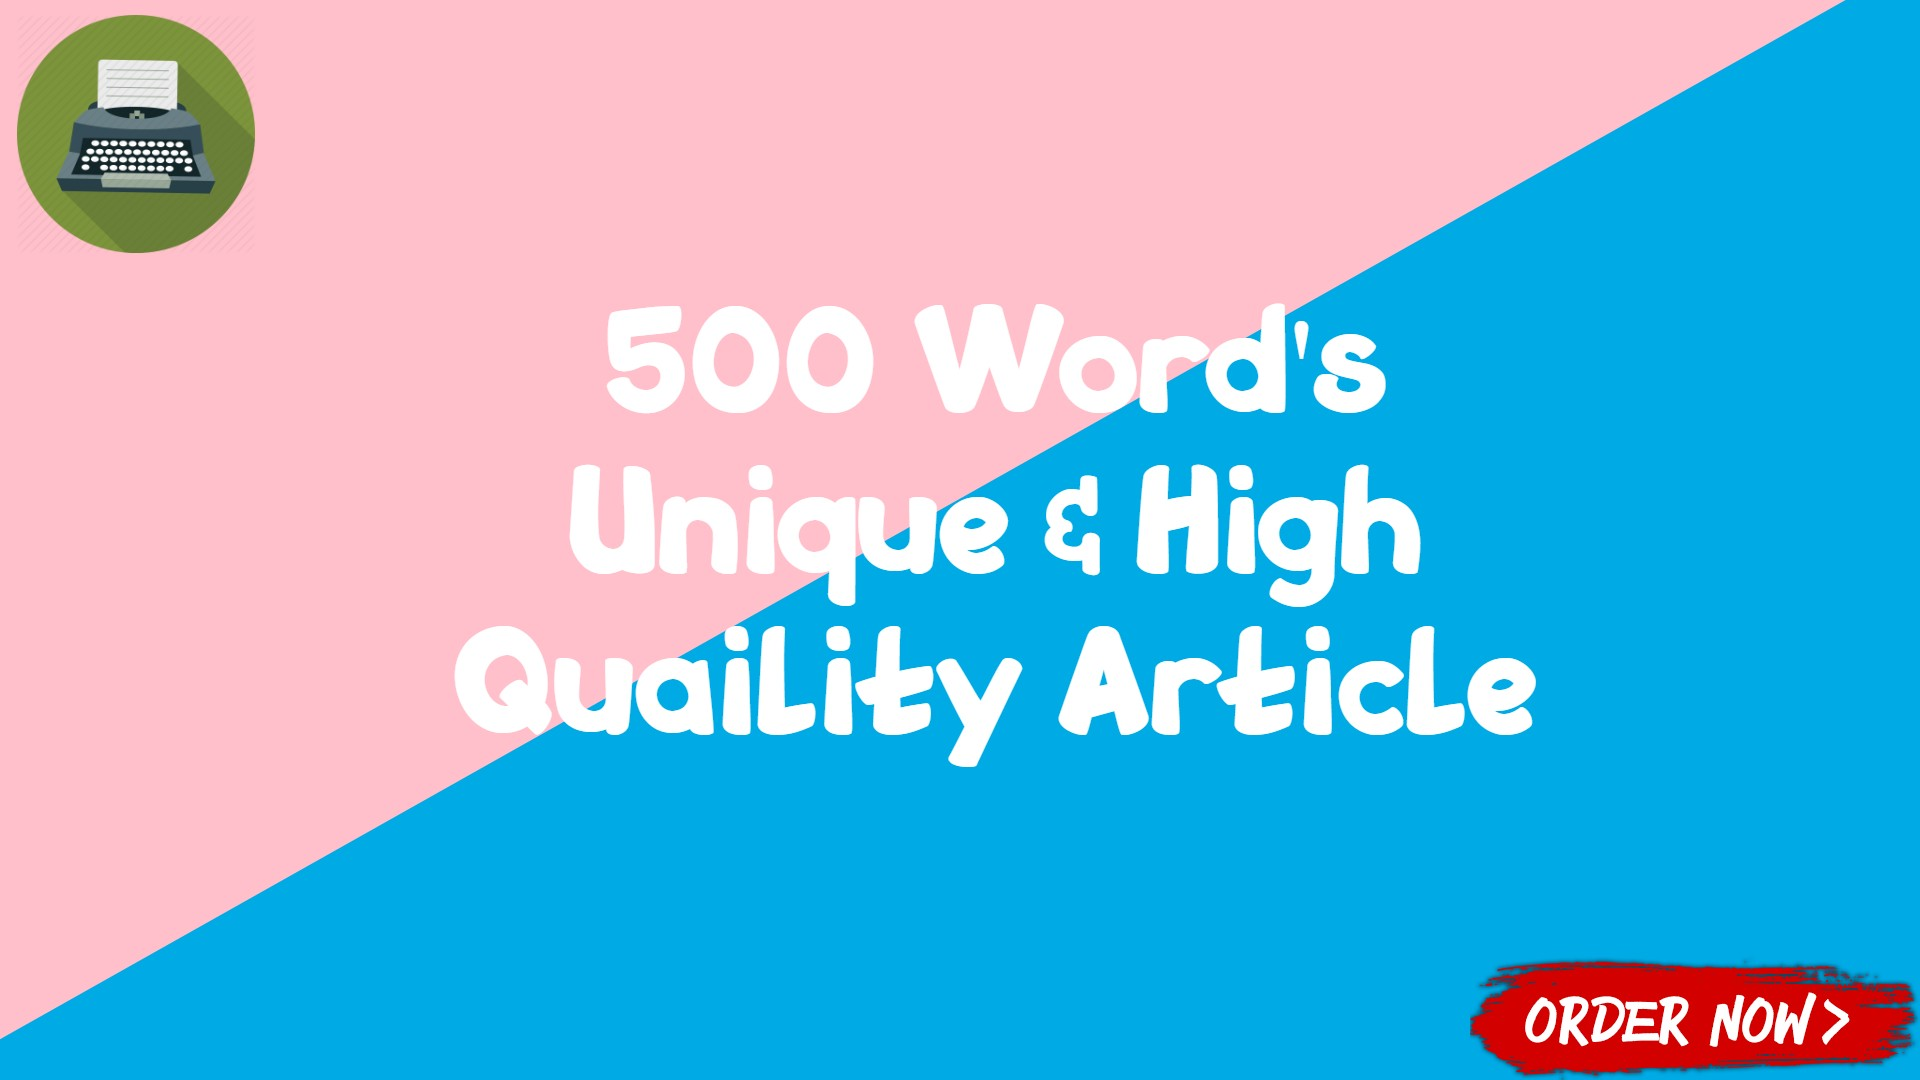 400-500 Words Unique and High Quality Article